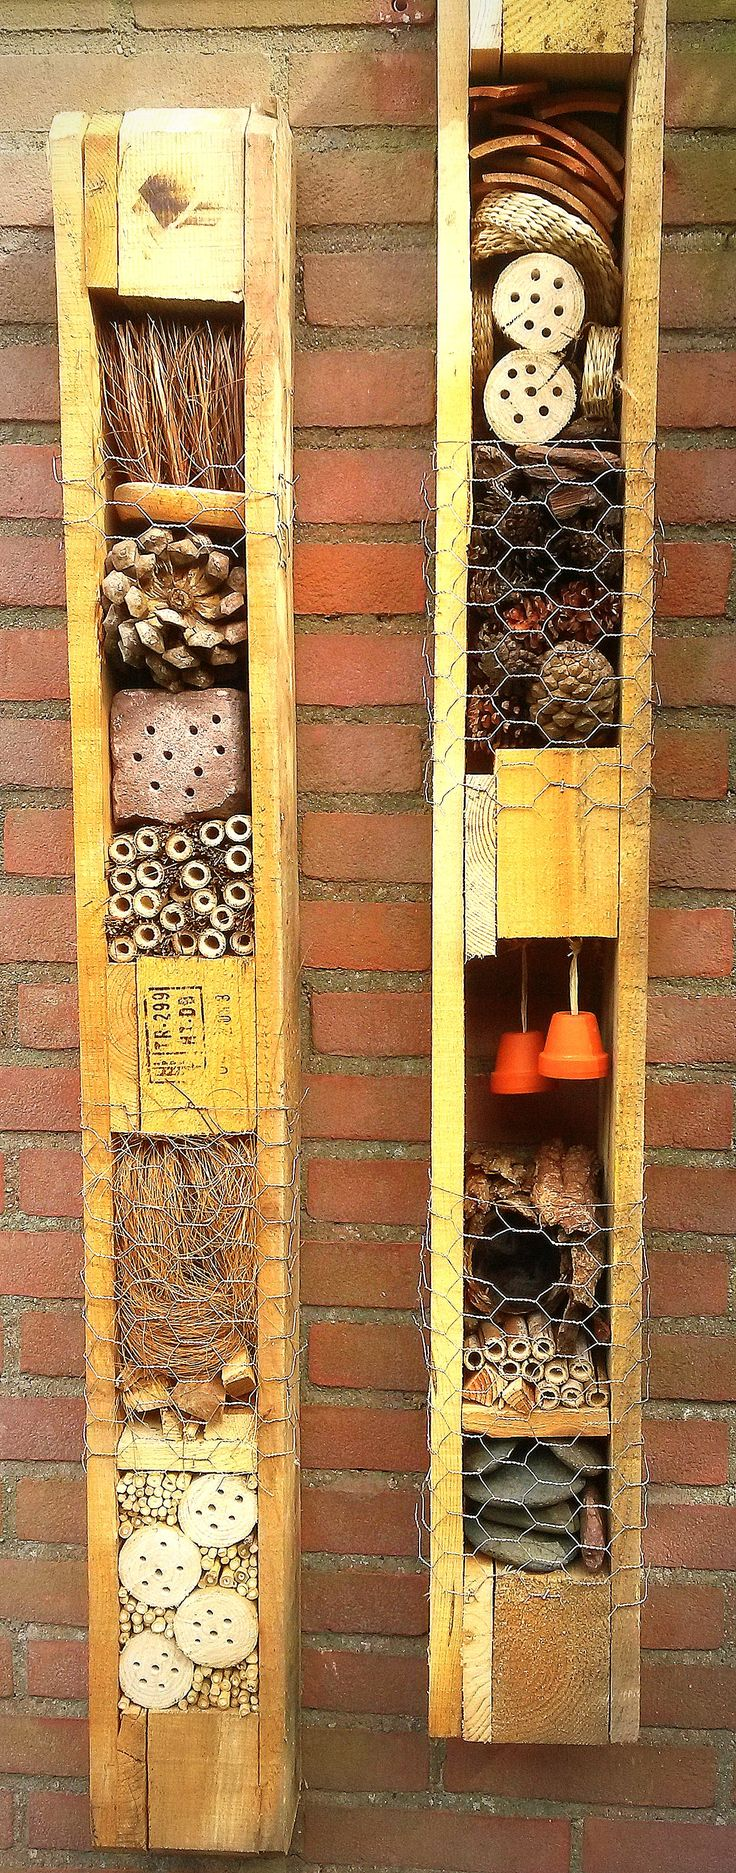 best 25 bug hotel ideas on pinterest insect hotel best hotel